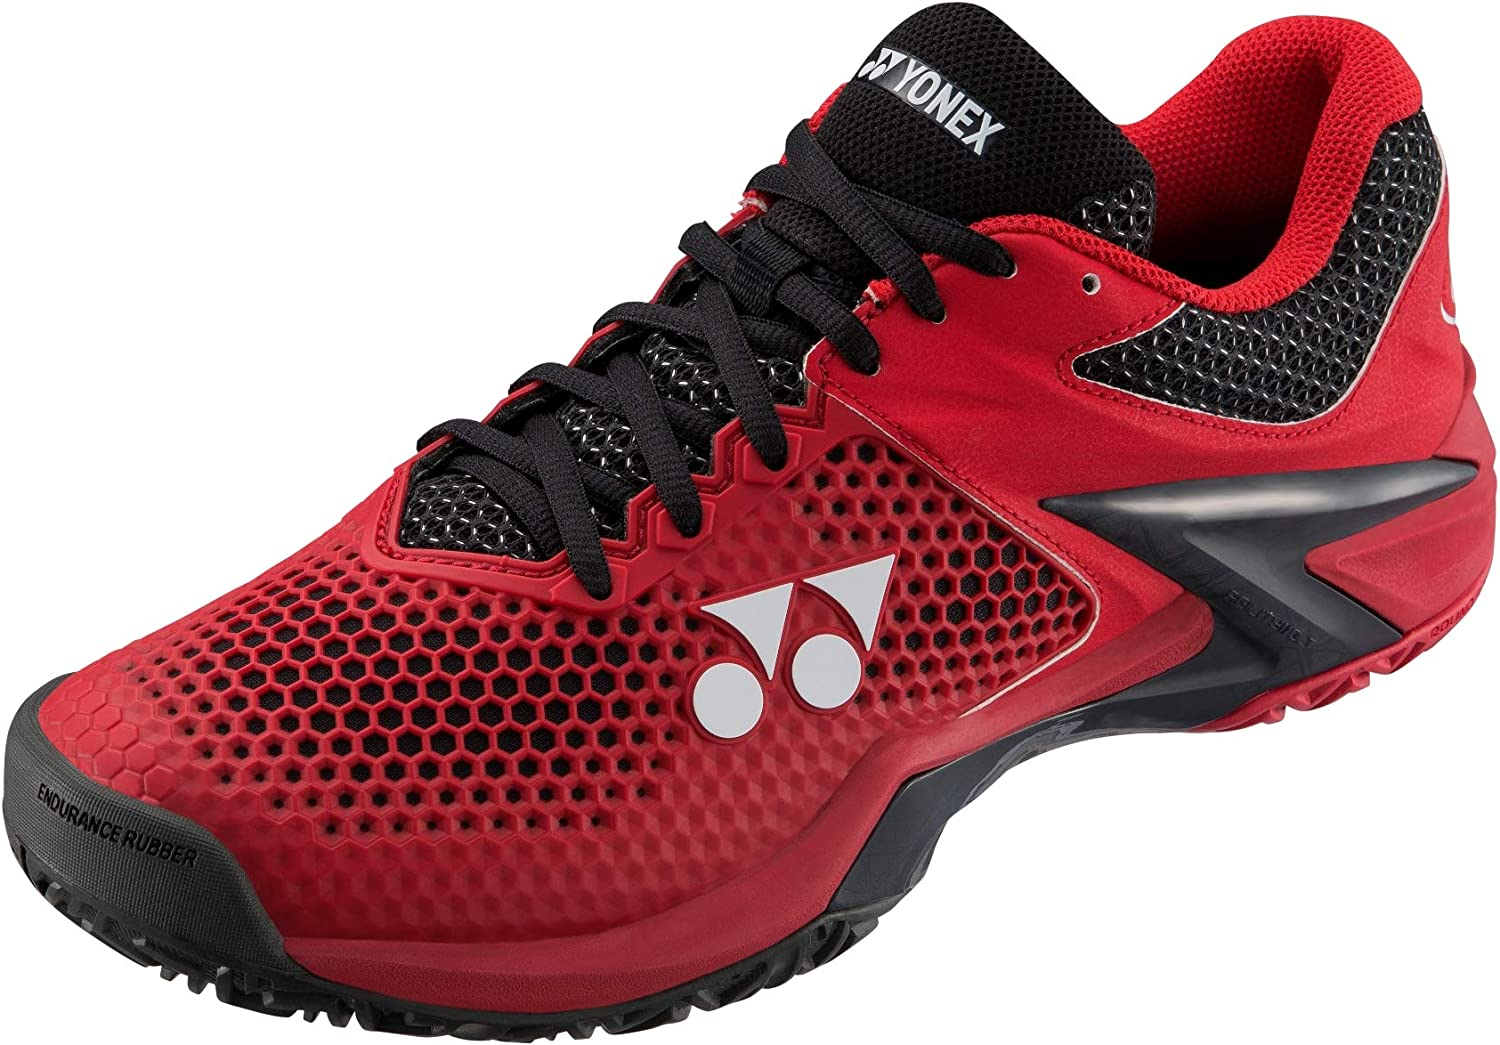 Yonex Power Cushion Eclipsion 2 Mens Tennis shoes, Red Black (Size 11)